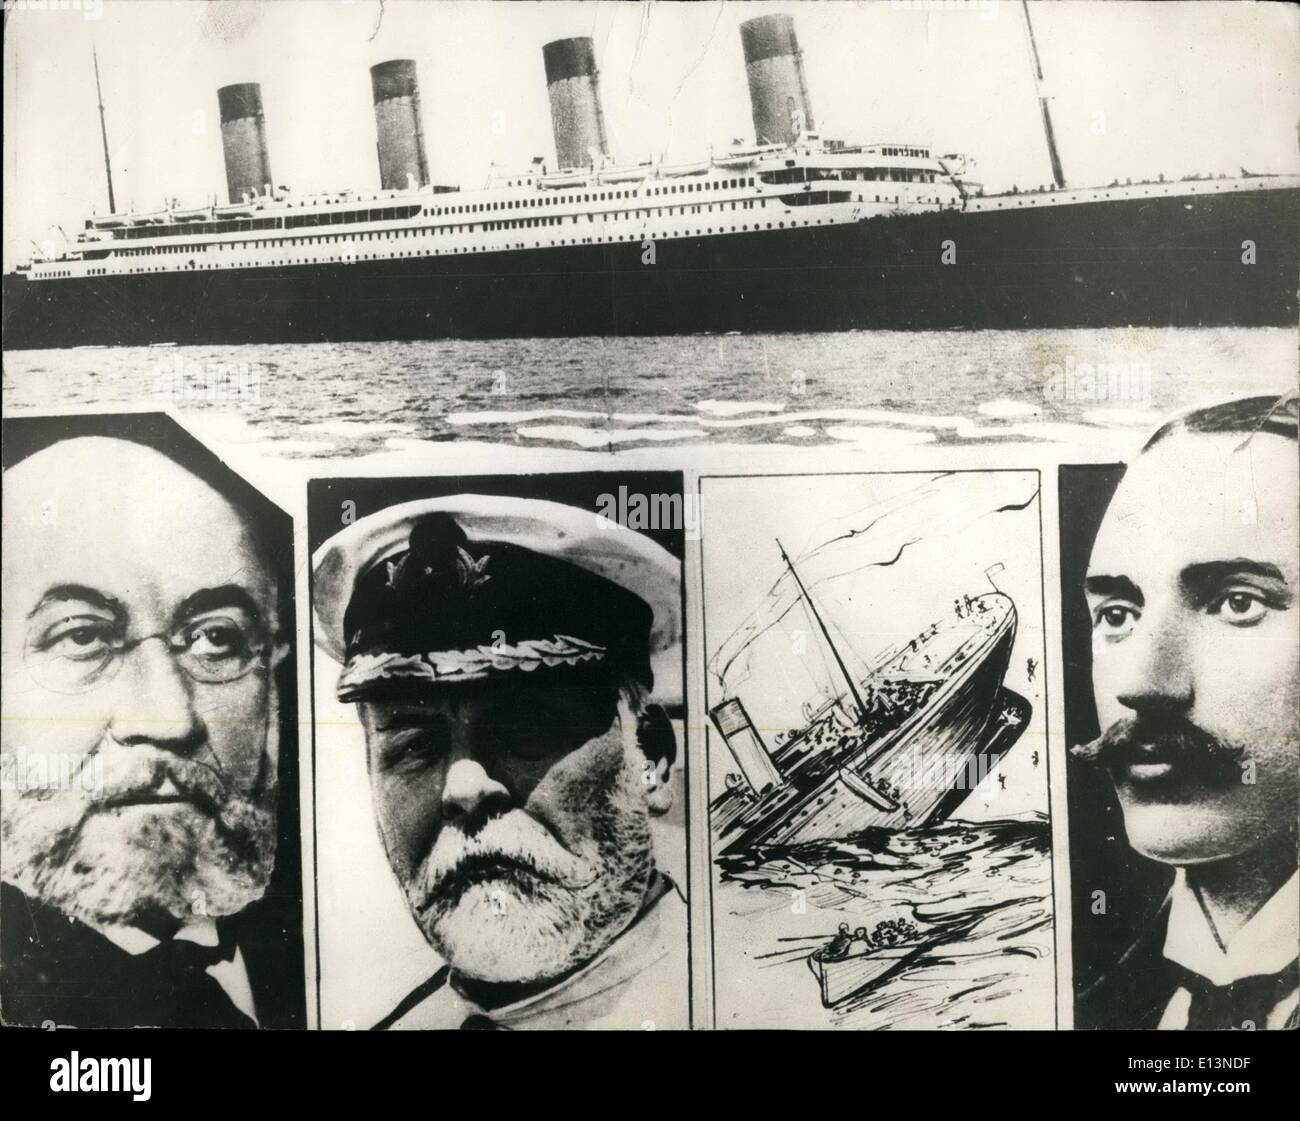 Mar. 22, 2012 - Sinking of the S.S Titanic. Photo shows Isadore Strauss; Captain E.J. Smith and John Jacob Astor. - Stock Image